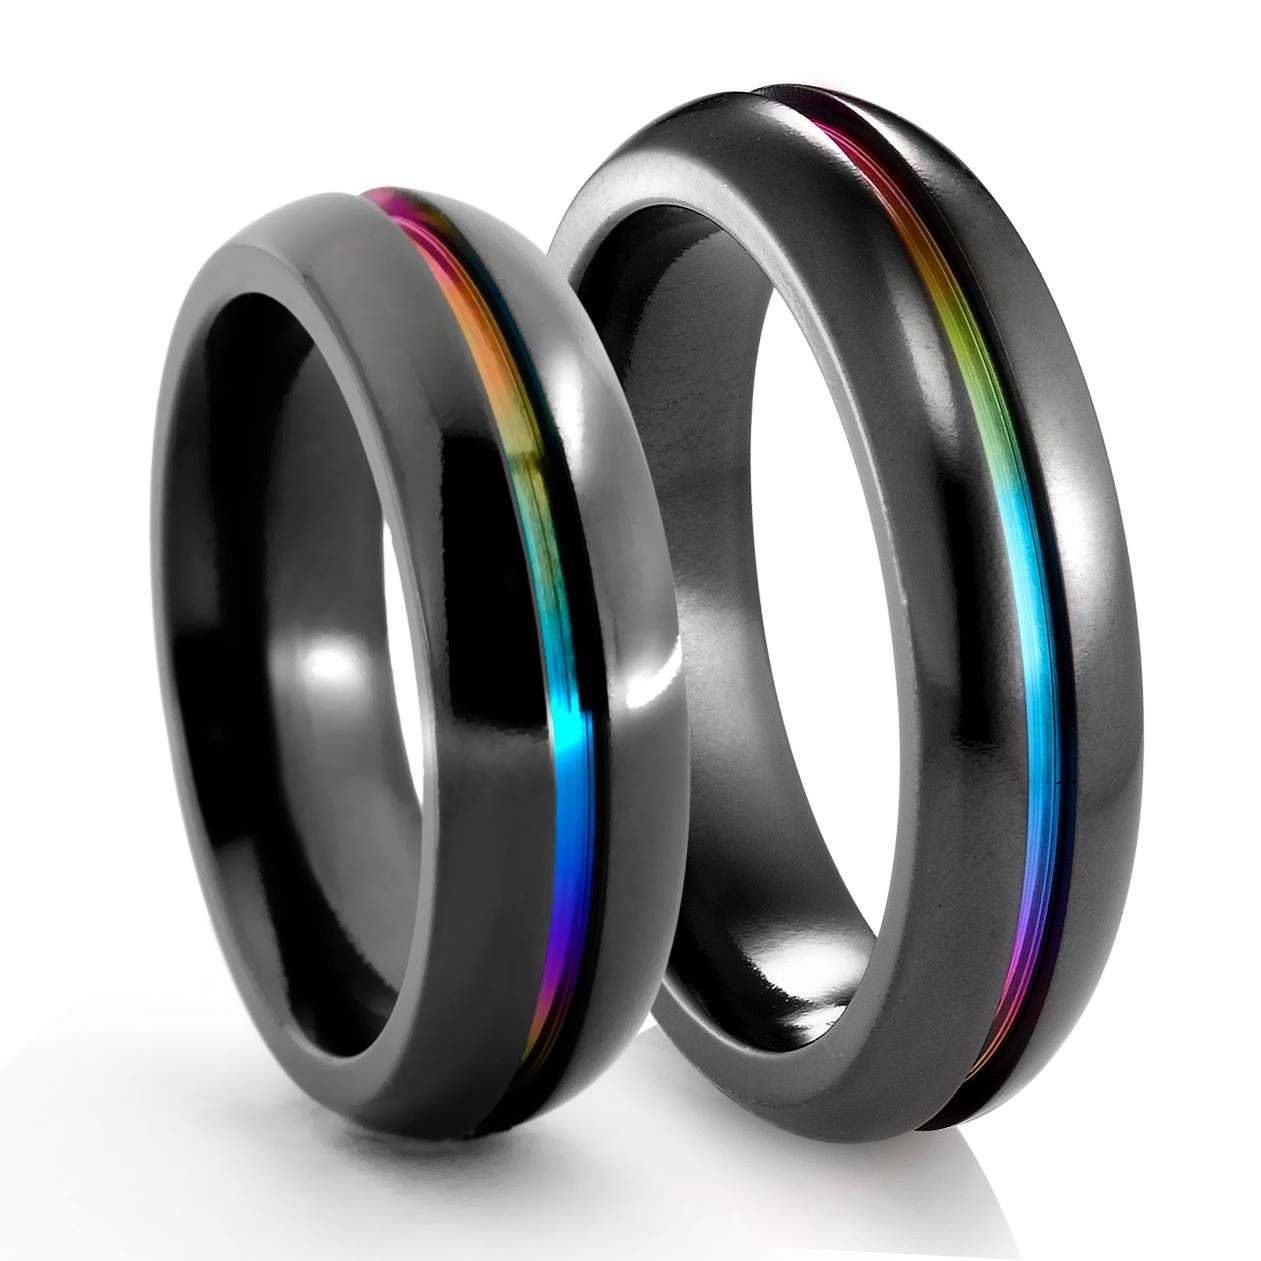 design bands rainbow dp mens wedding spinner for chain womens steel stainless rings size pride